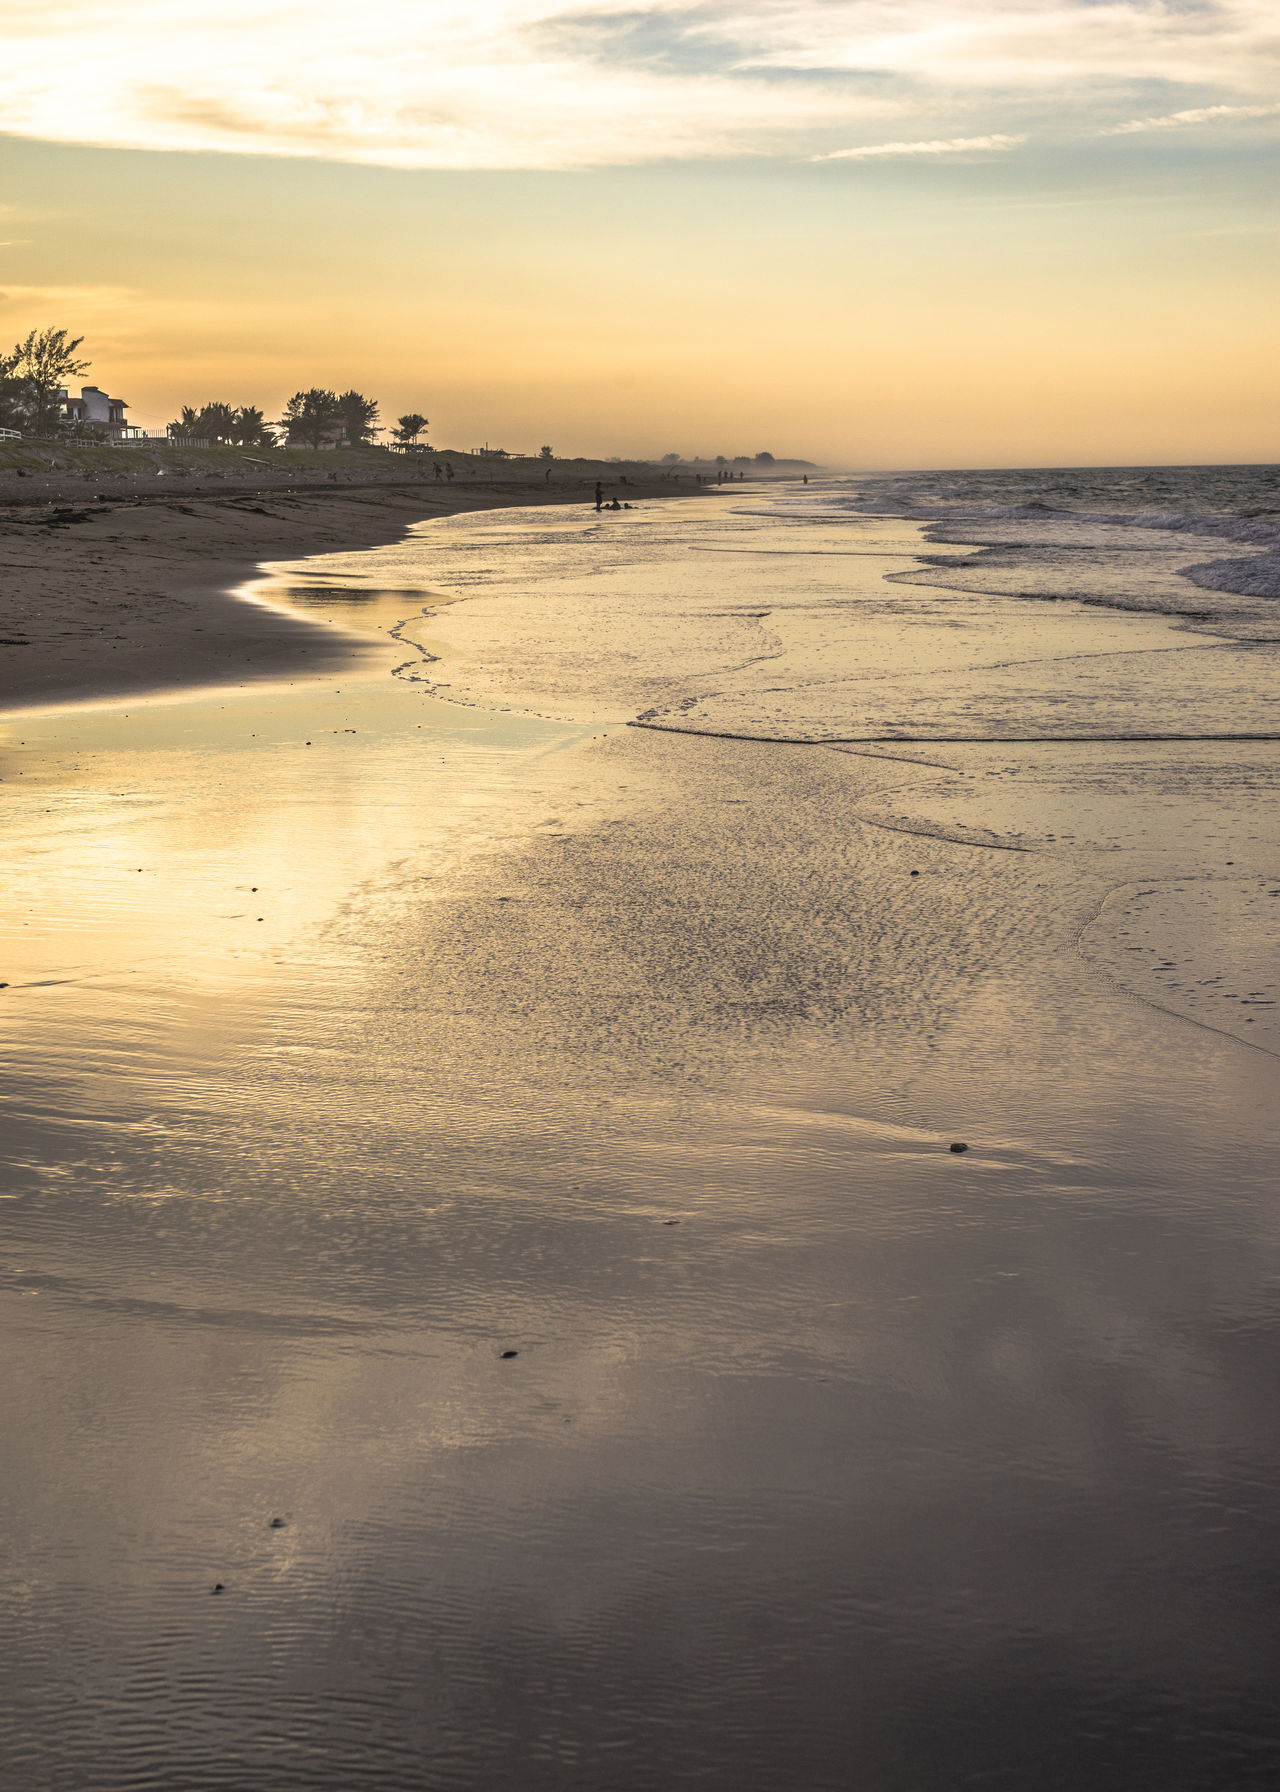 Beach Beach Life Beach Photography Beauty In Nature Day Landscape Landscape_Collection Landscape_photography Nature Nature Photography Nature_collection No People Outdoors Sand Scenics Sea Sky Sunset Tranquil Scene Tranquility Water Waves, Ocean, Nature Neighborhood Map